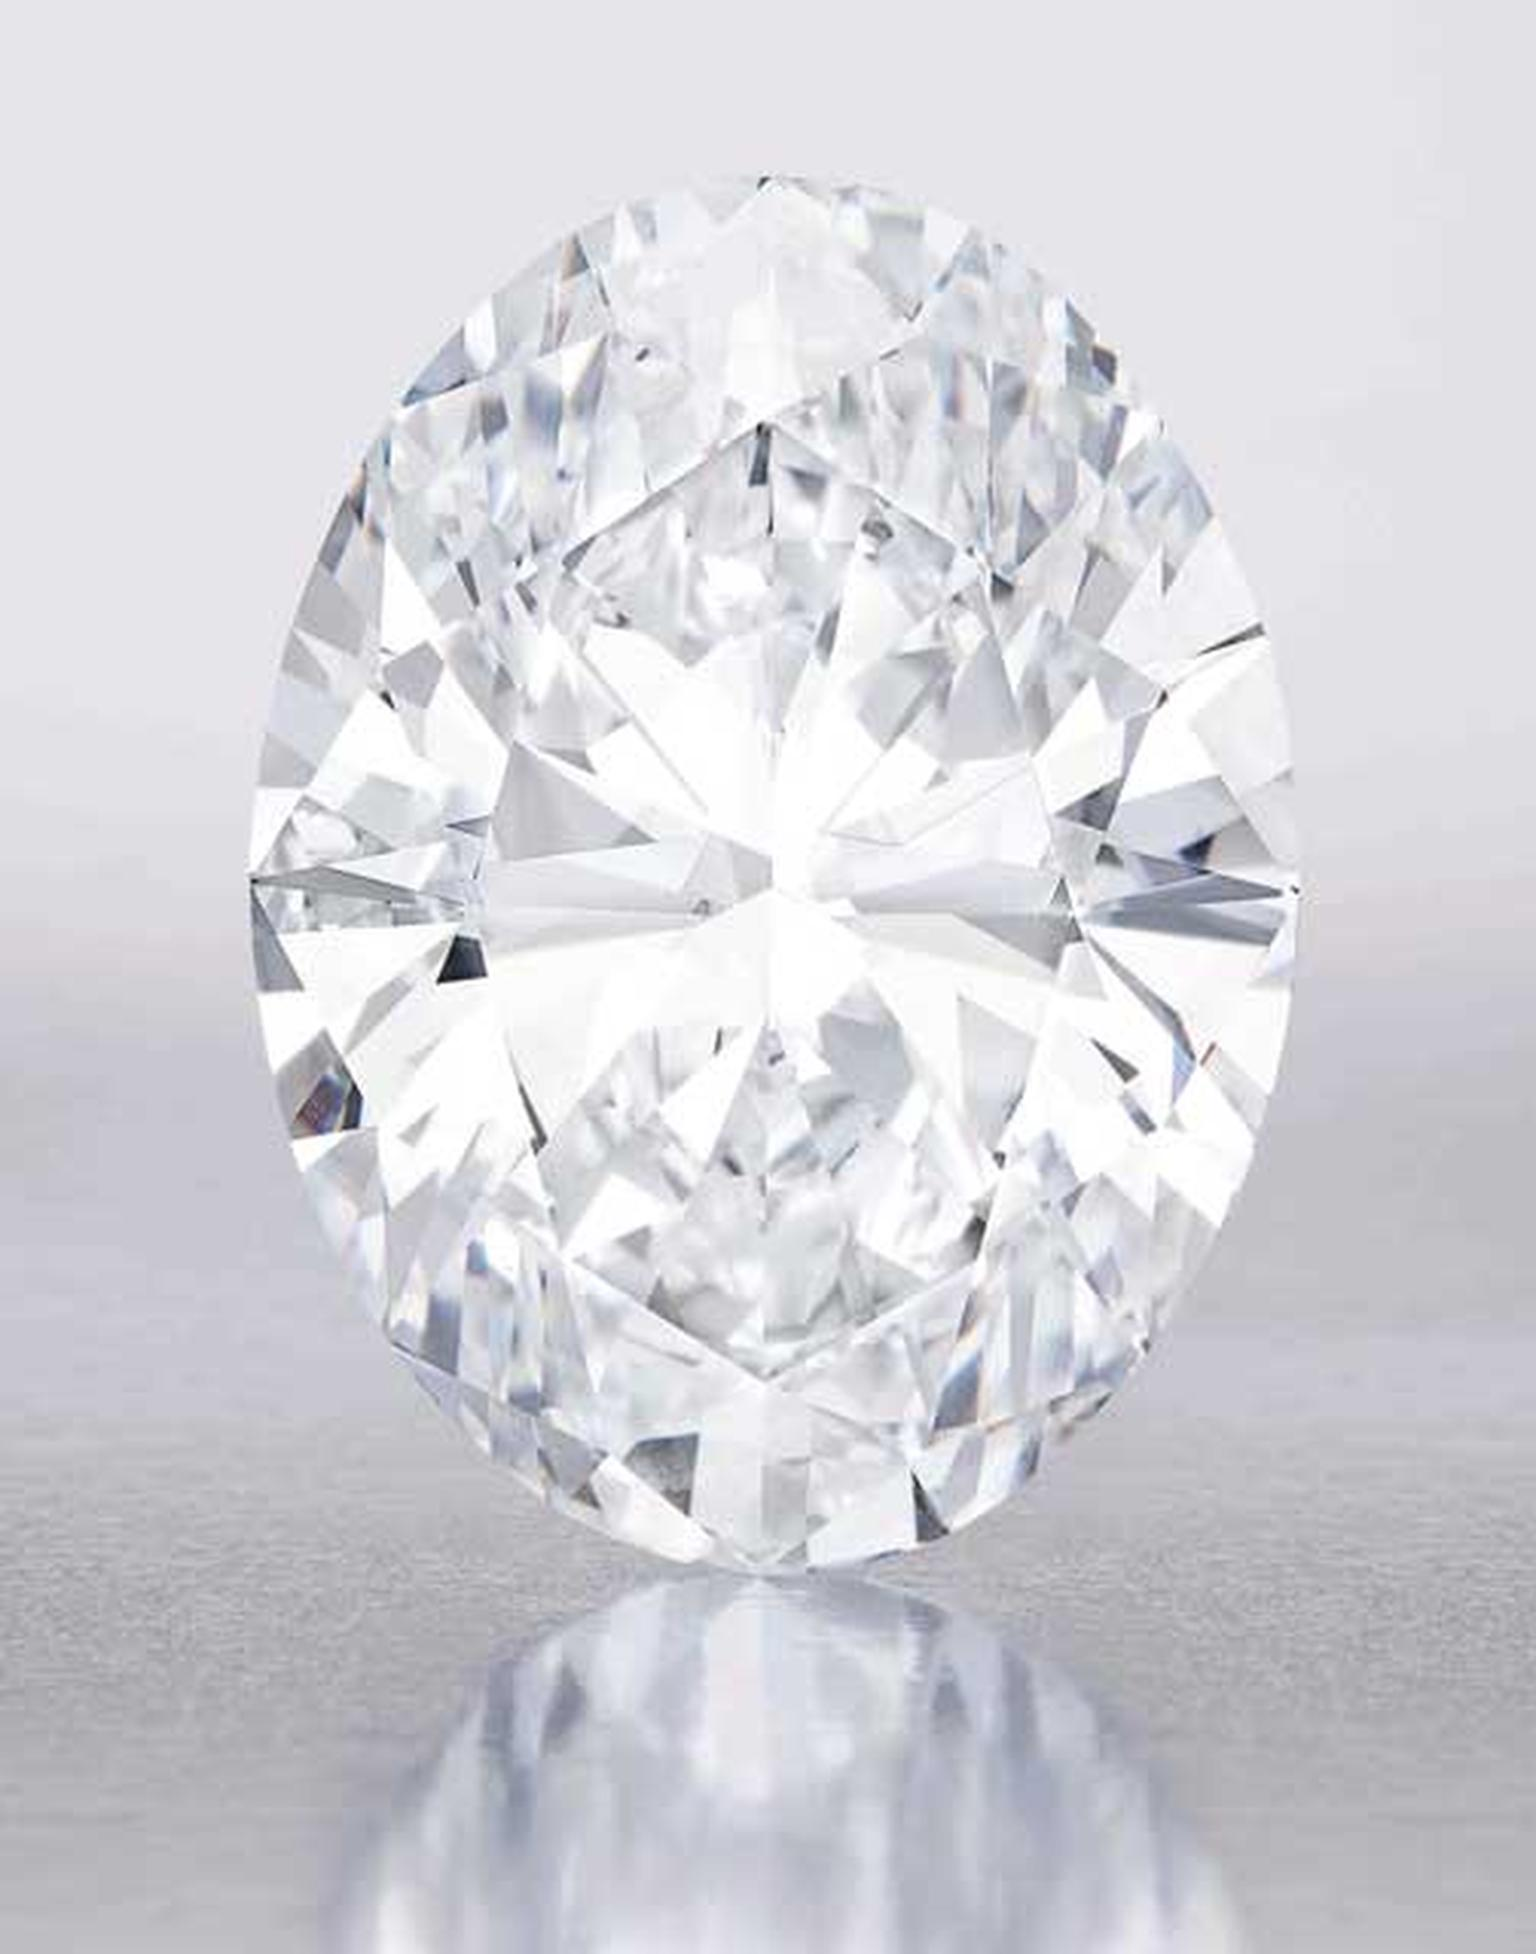 This flawless Oval diamond sold at Sotheby's Hong Kong in October 2013 for $30.6m, taking the world record for the highest price ever paid for a colourless diamond at auction.